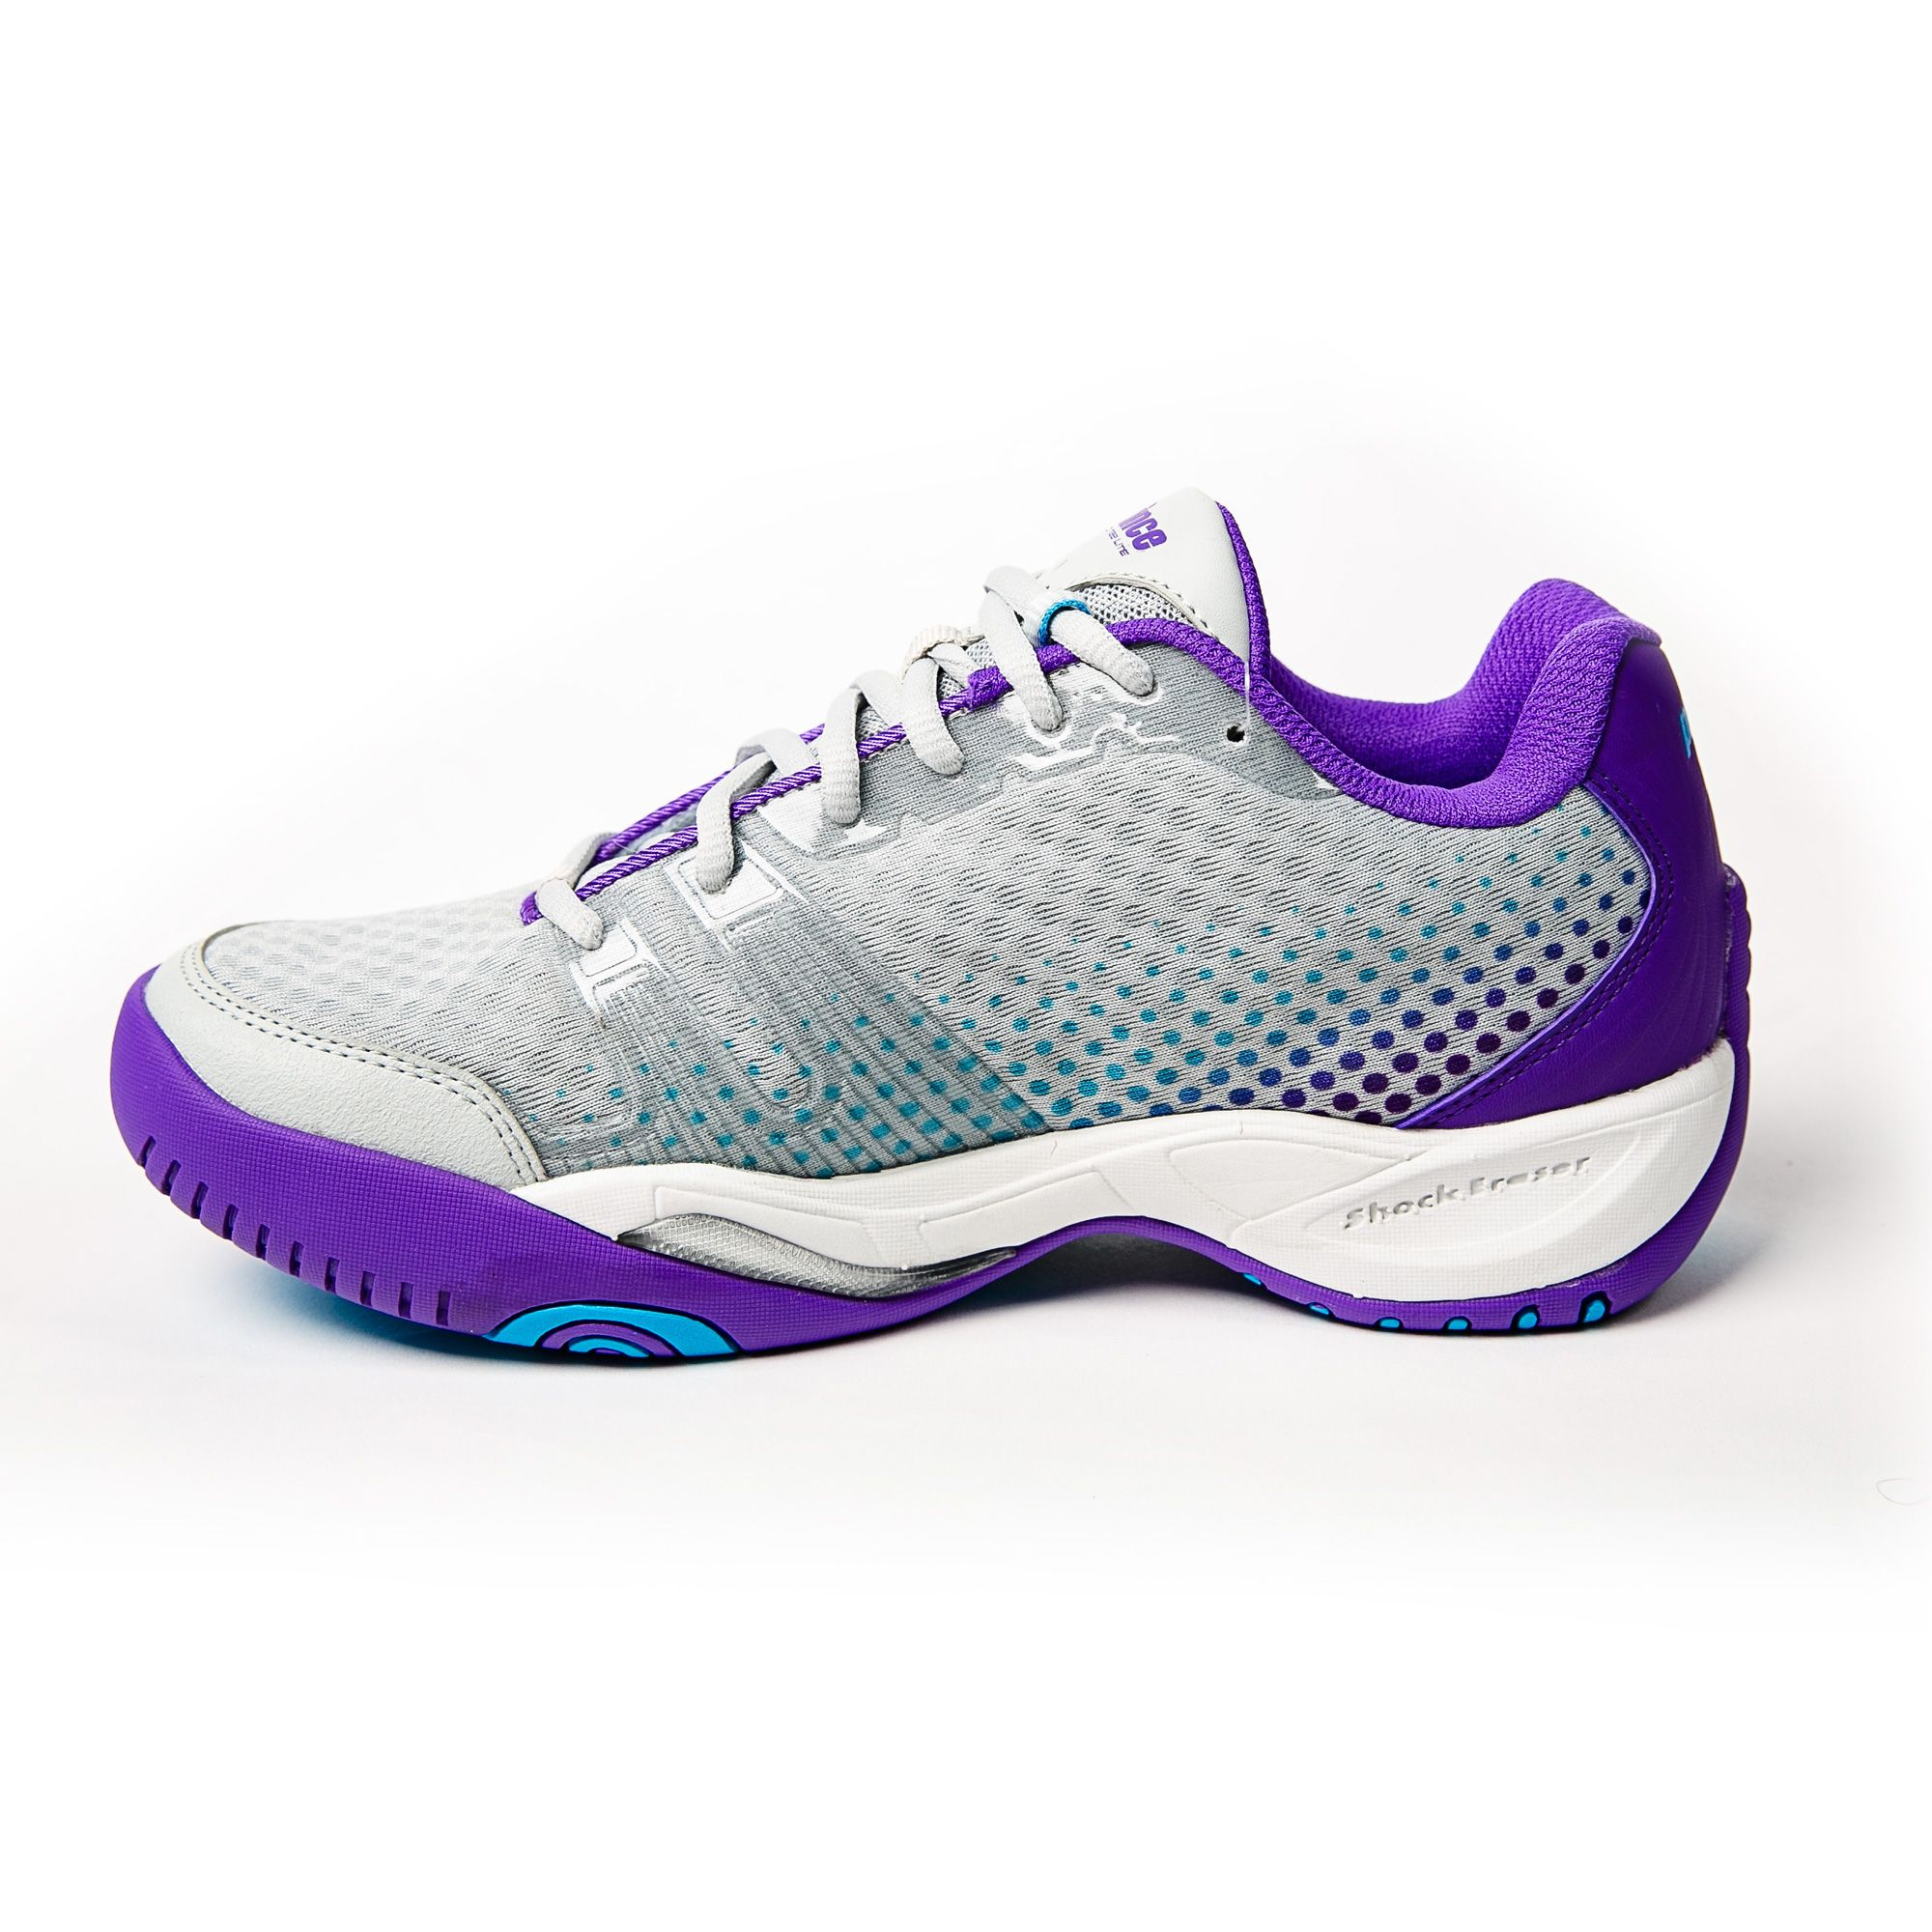 Prince Ladies Tennis Shoes